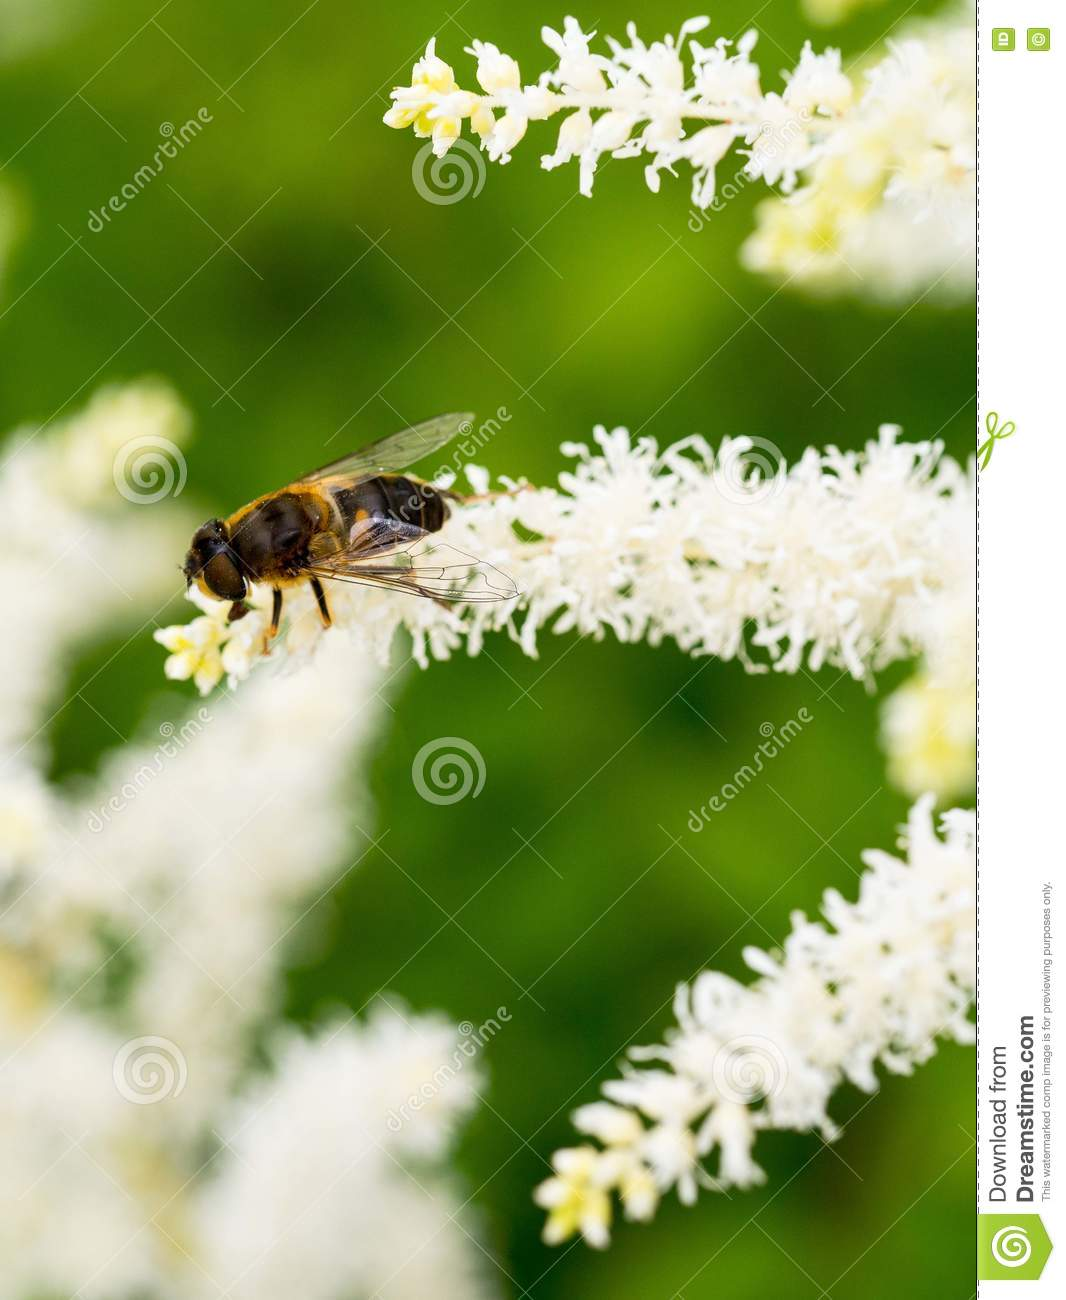 Small bee sits on the white sweet smelling flowers collecting download small bee sits on the white sweet smelling flowers collecting pollen stock image mightylinksfo